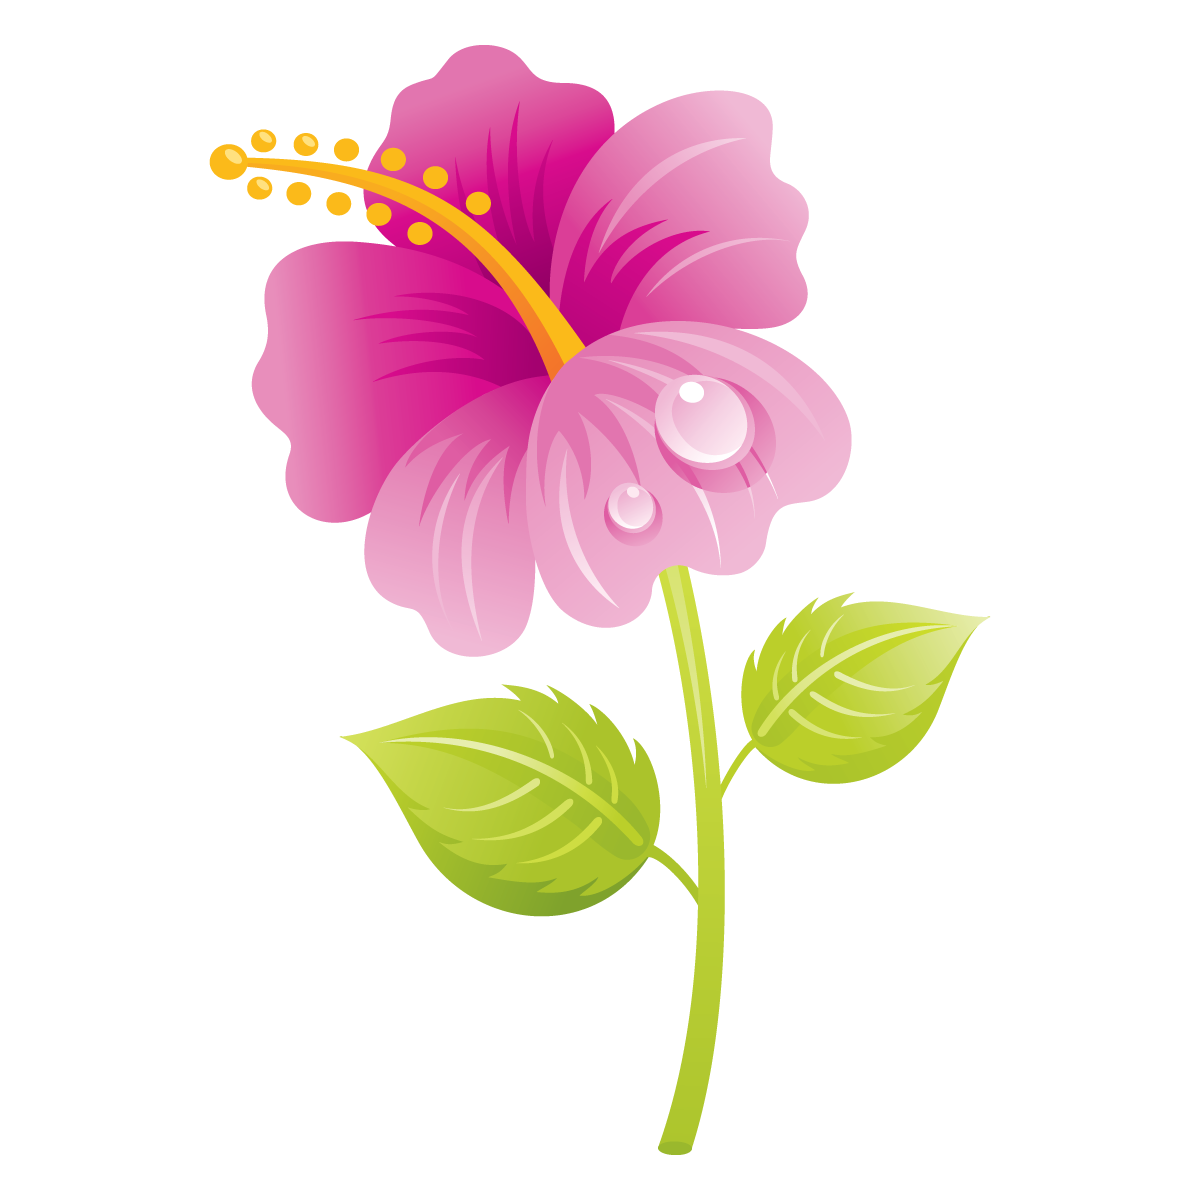 mothers day flowers clipart.